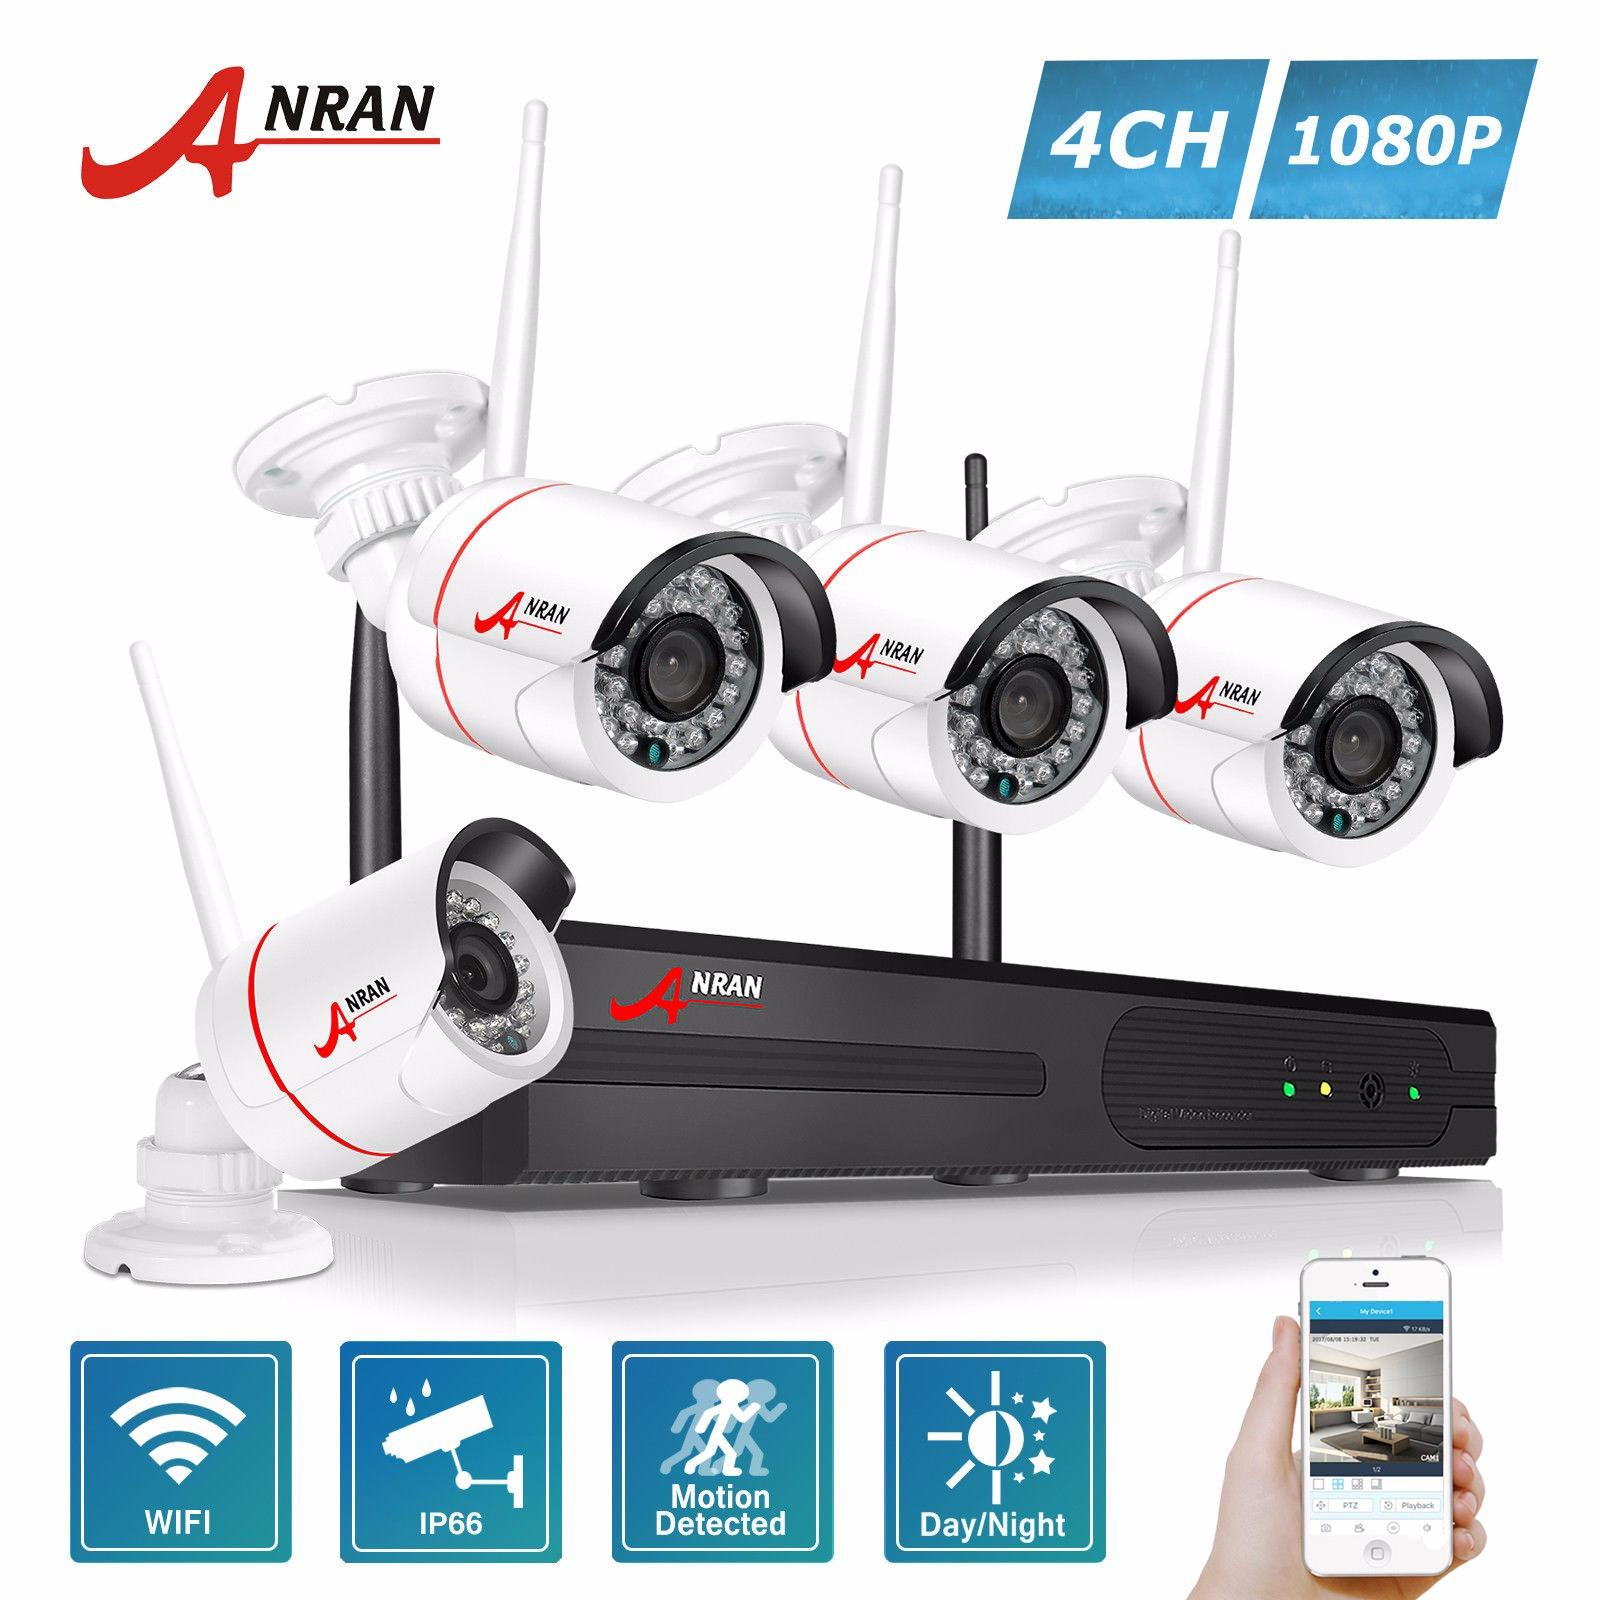 ANRAN 4CH WIFI Network NVR Wireless Security System with 4 pcs 1080P Watrproof Outdoor IP Camera Easy Remote Acess Plug Play